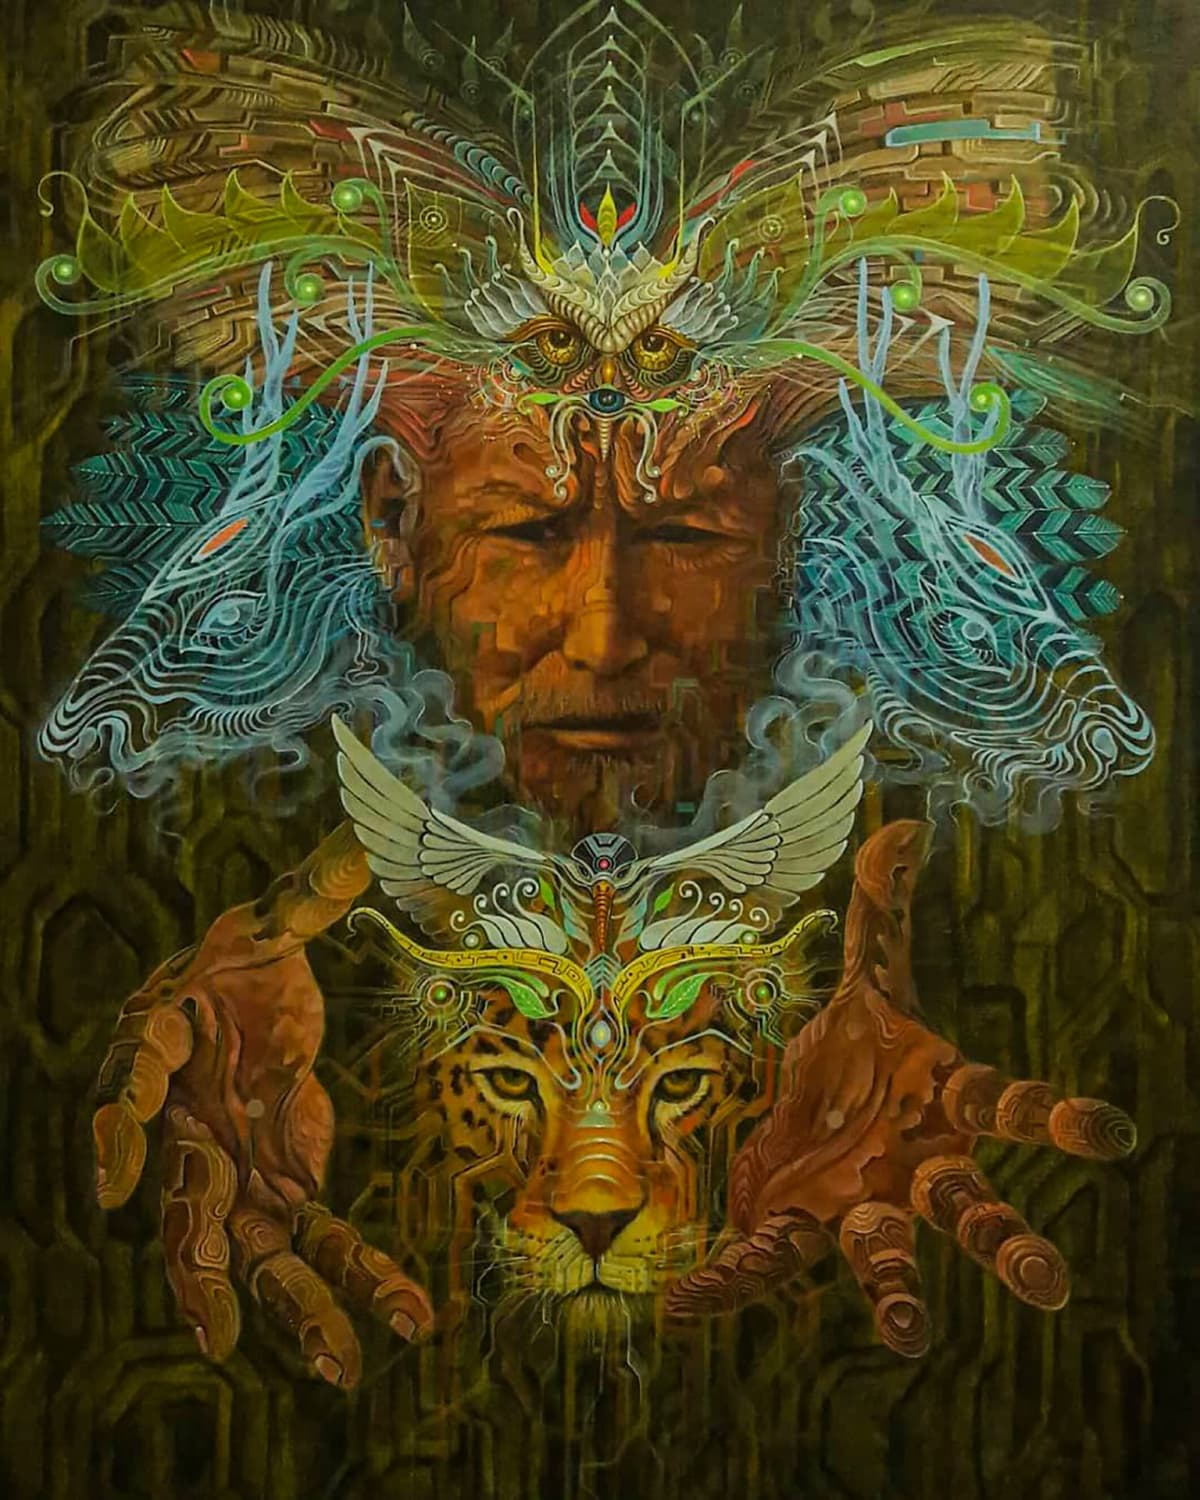 Geenss Archenti, Papruy, ayahuasca